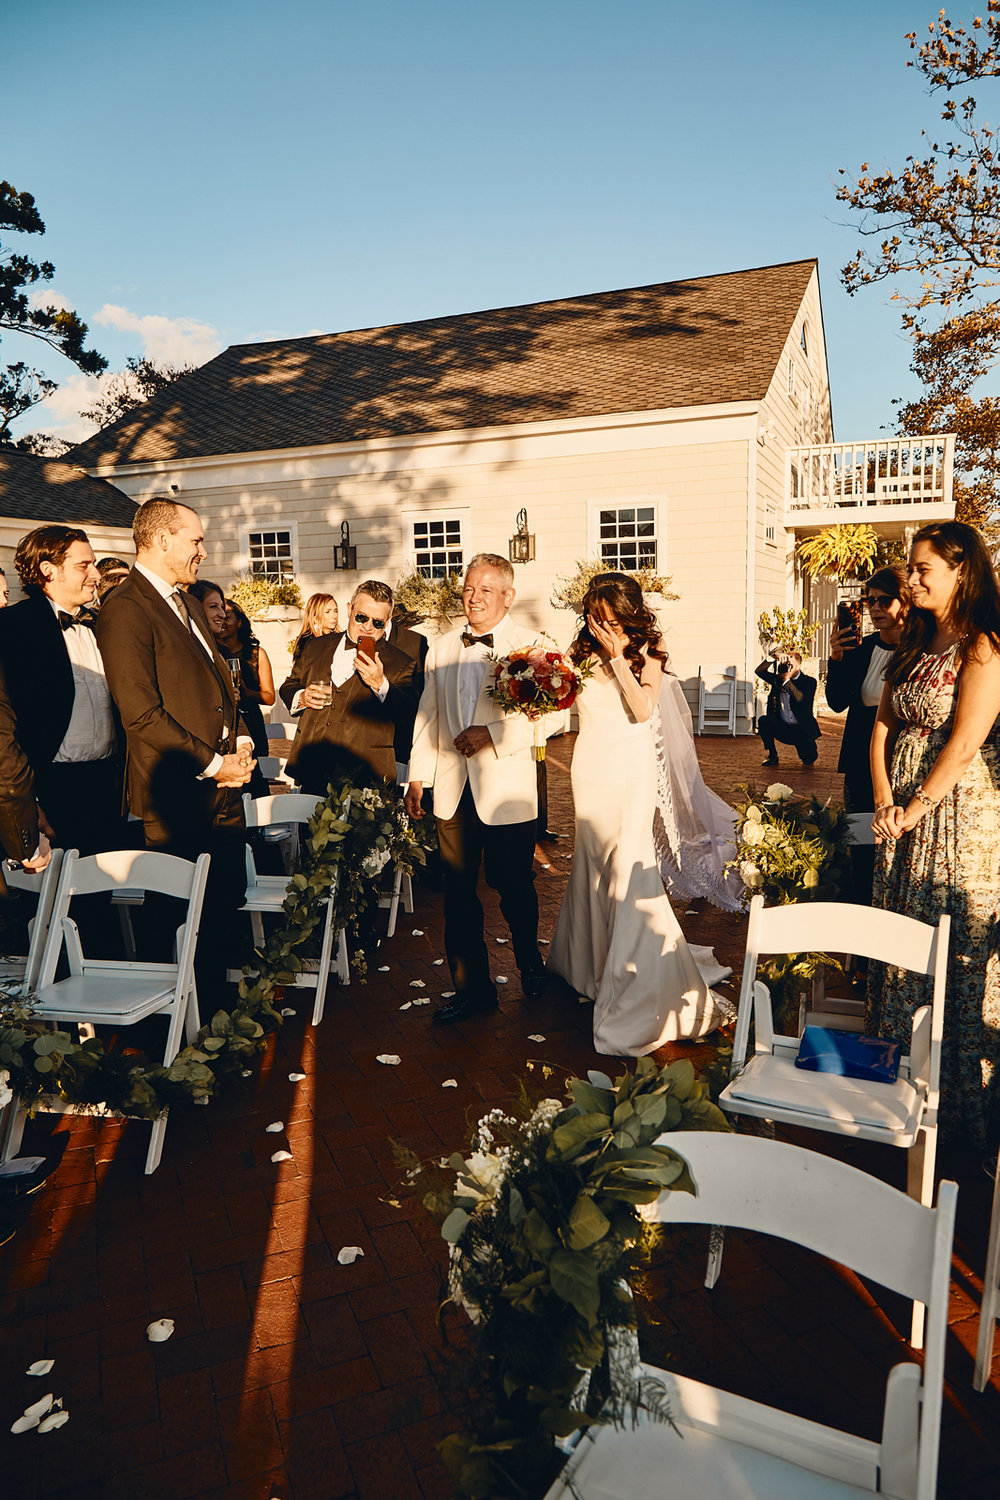 181020_KatherineScottWedding_SecondCeremony 27.jpg